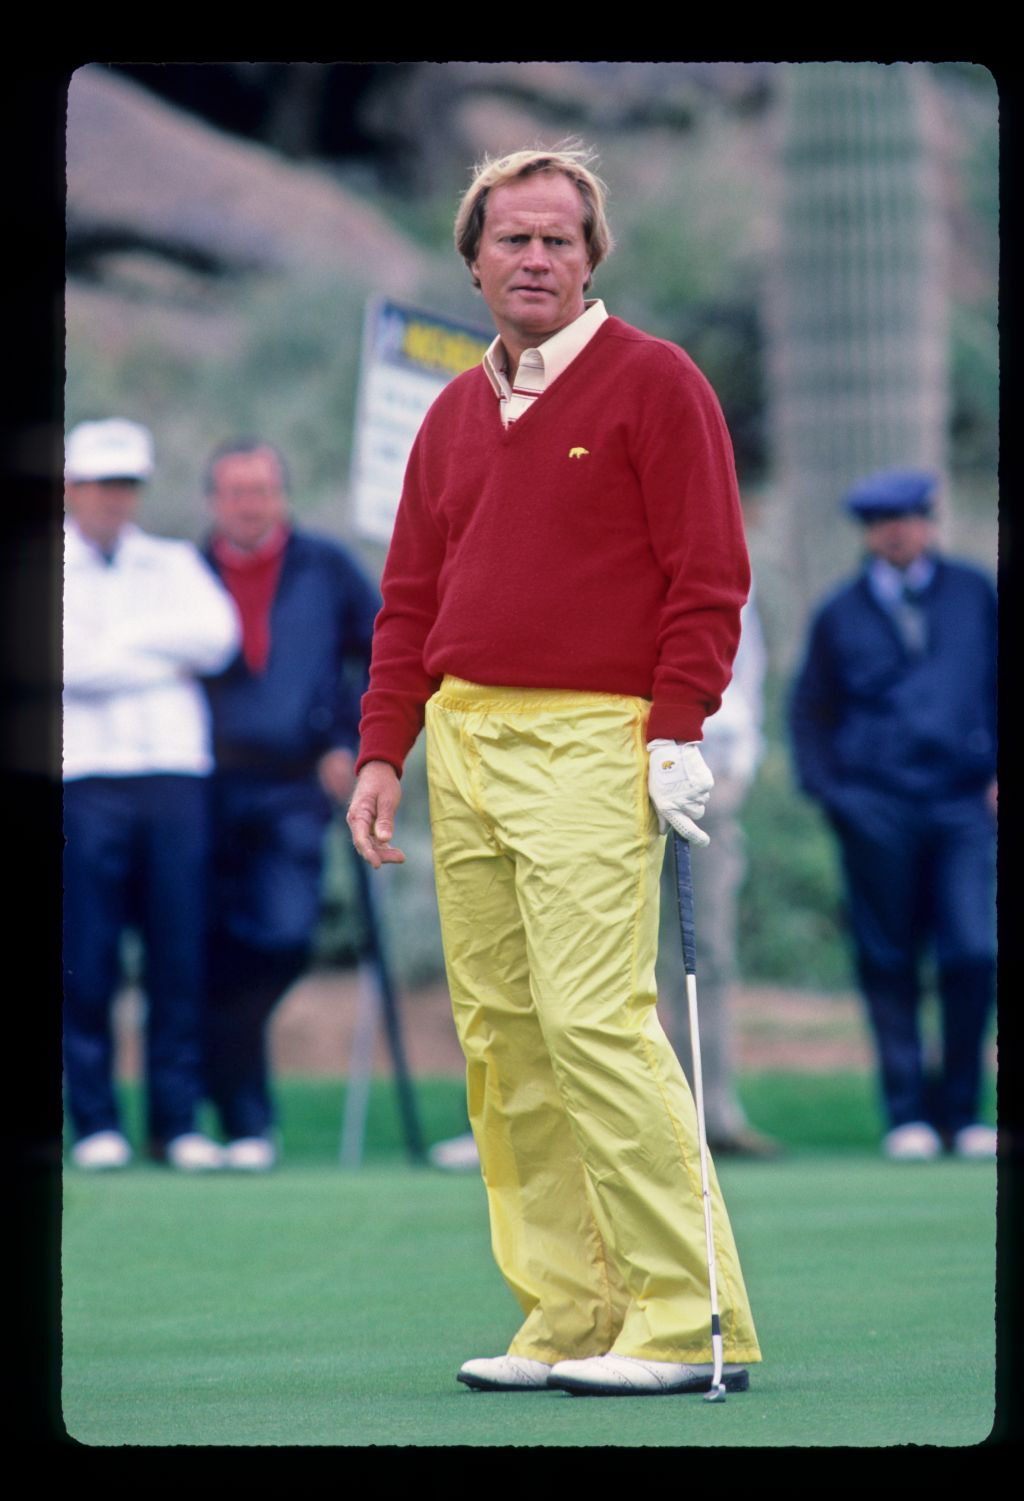 Jack Nicklaus with a near miss putt during the 1984 Skins Game